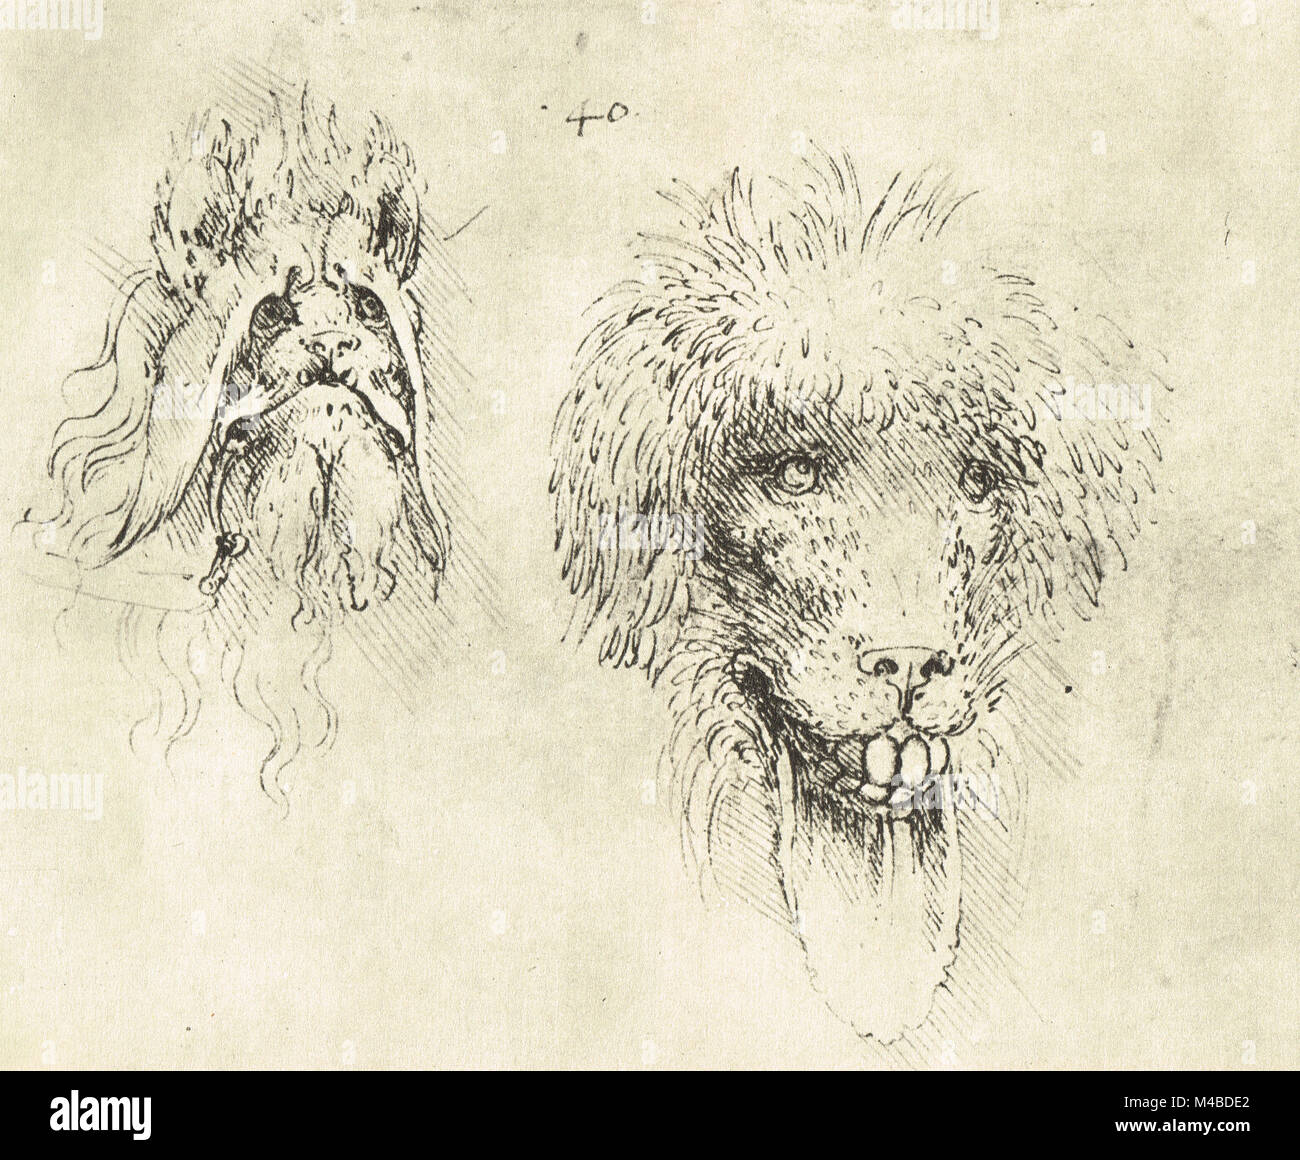 Two monsters drawn by Leonardo Da Vinci, 1452 – 1519 - Stock Image